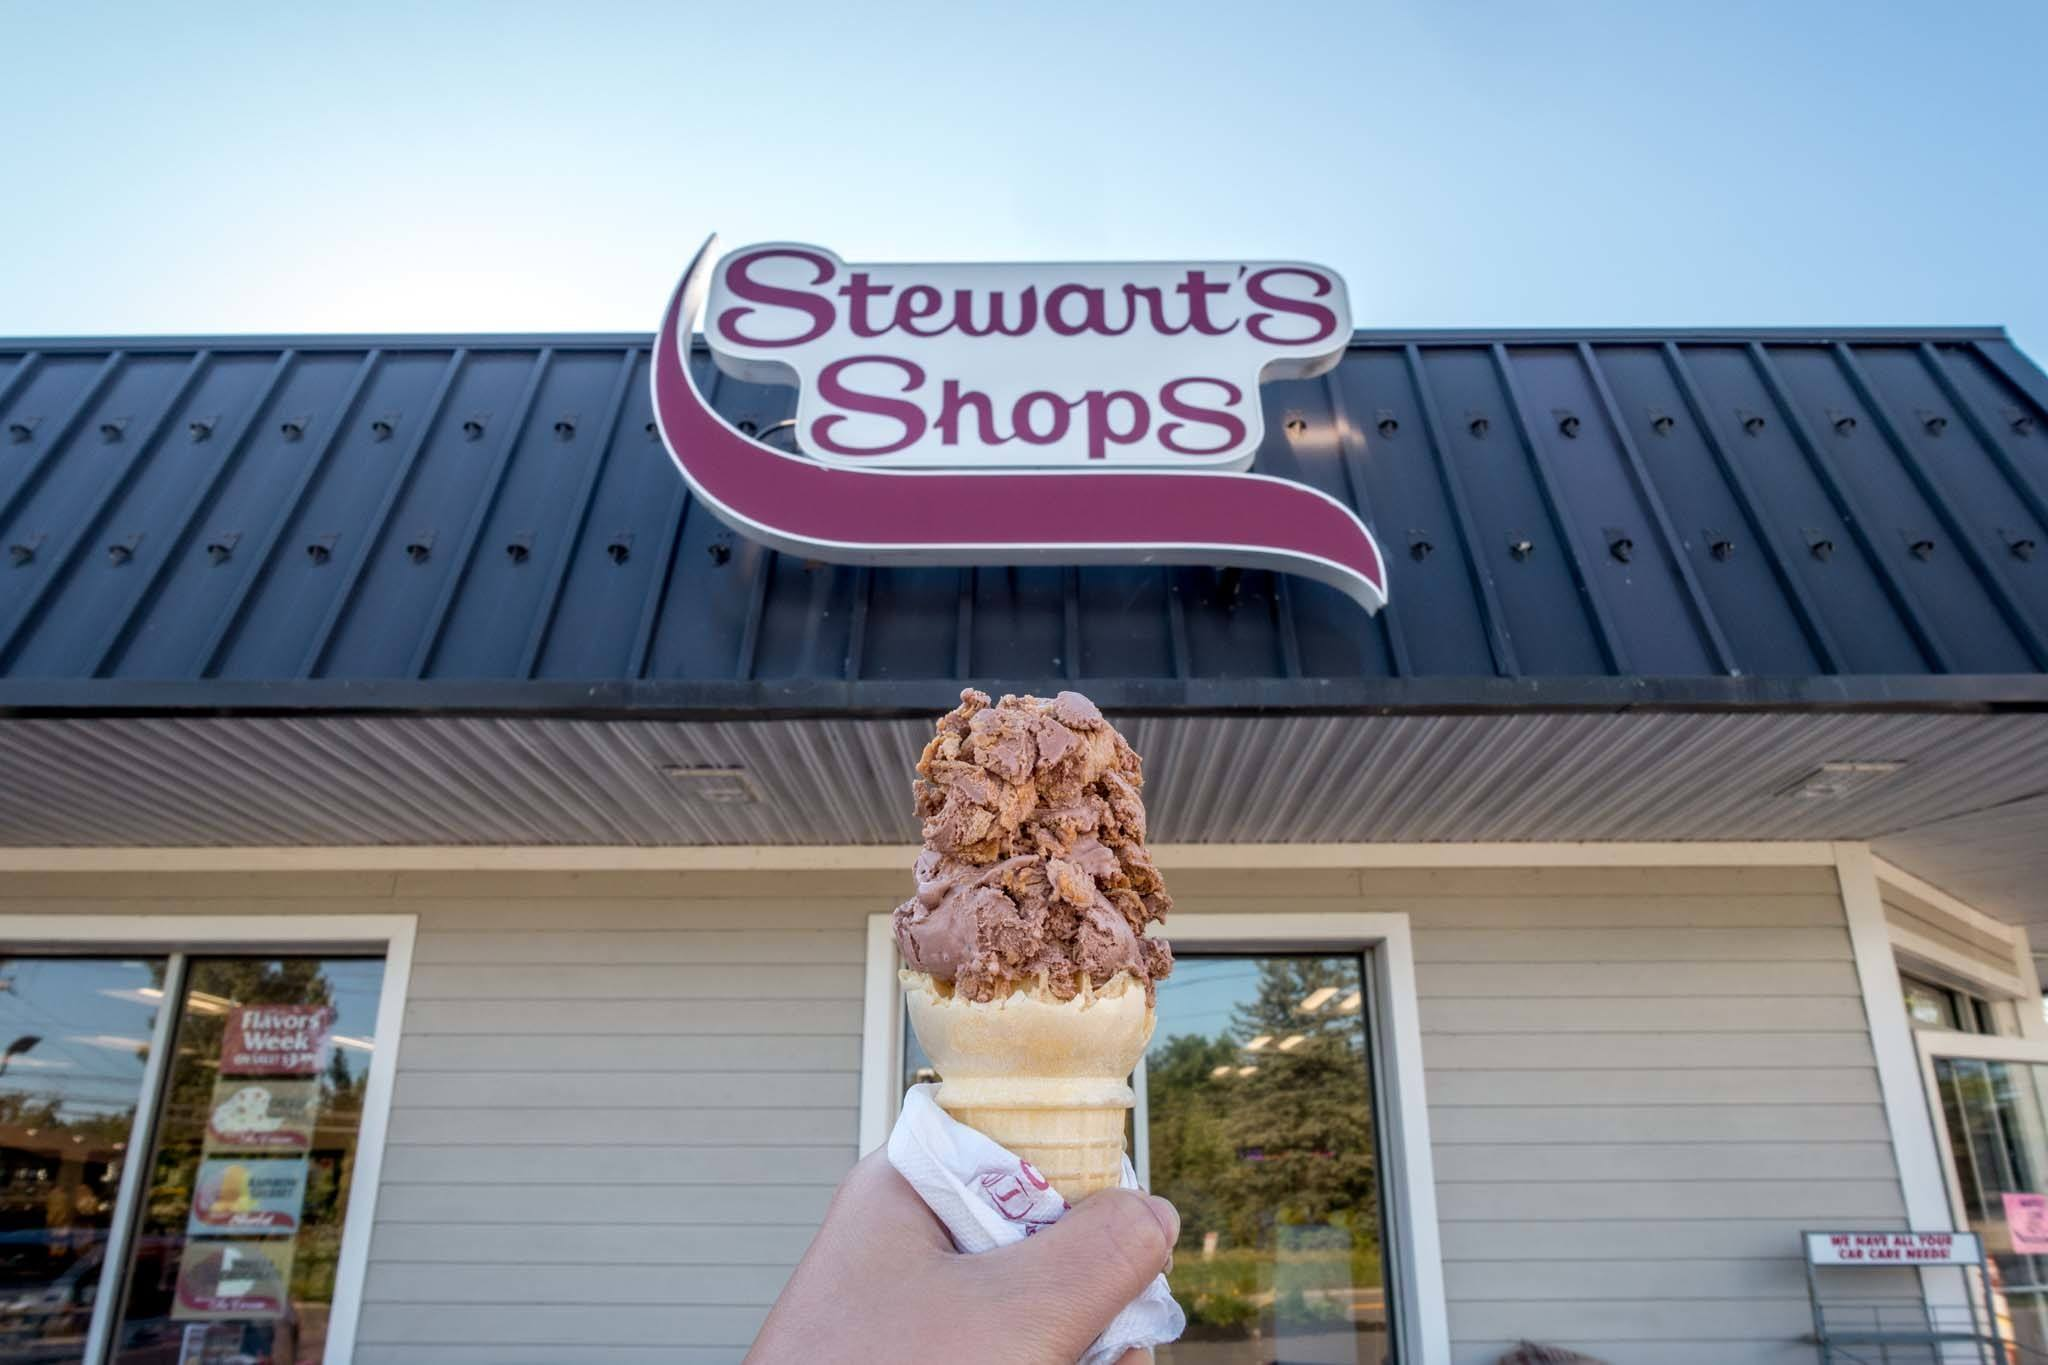 """Ice cream cone in front of """"Stewart's Shops"""" sign"""